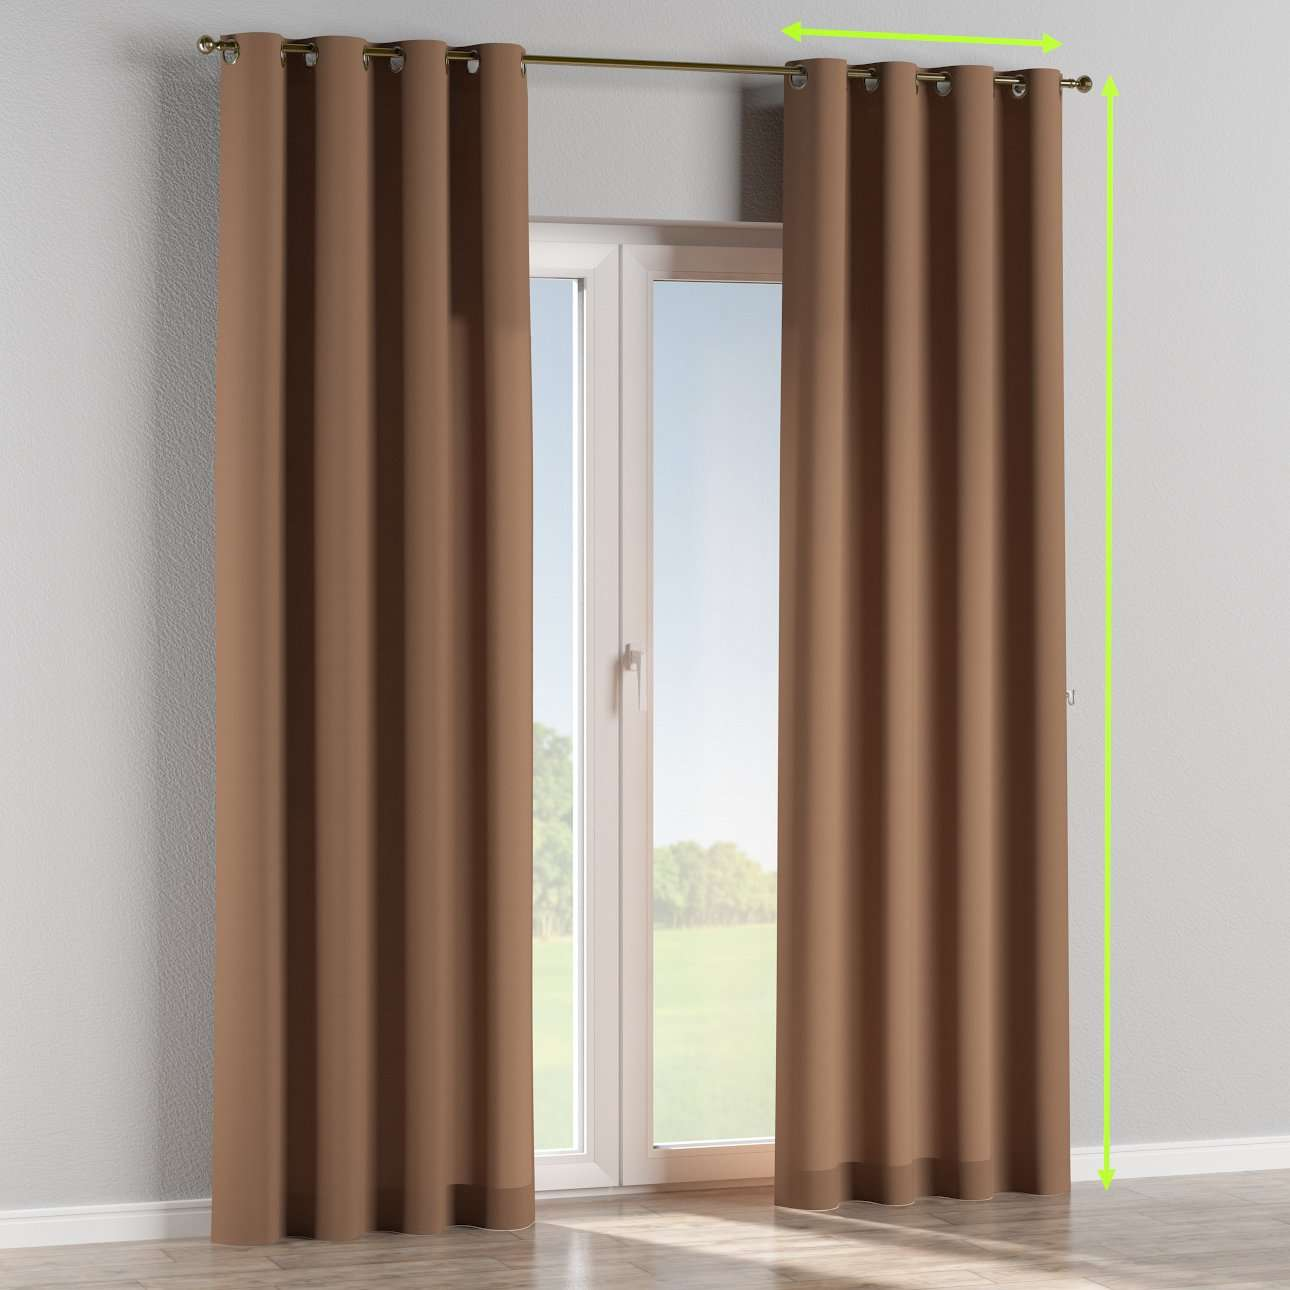 Eyelet lined curtains in collection Cotton Panama, fabric: 702-02